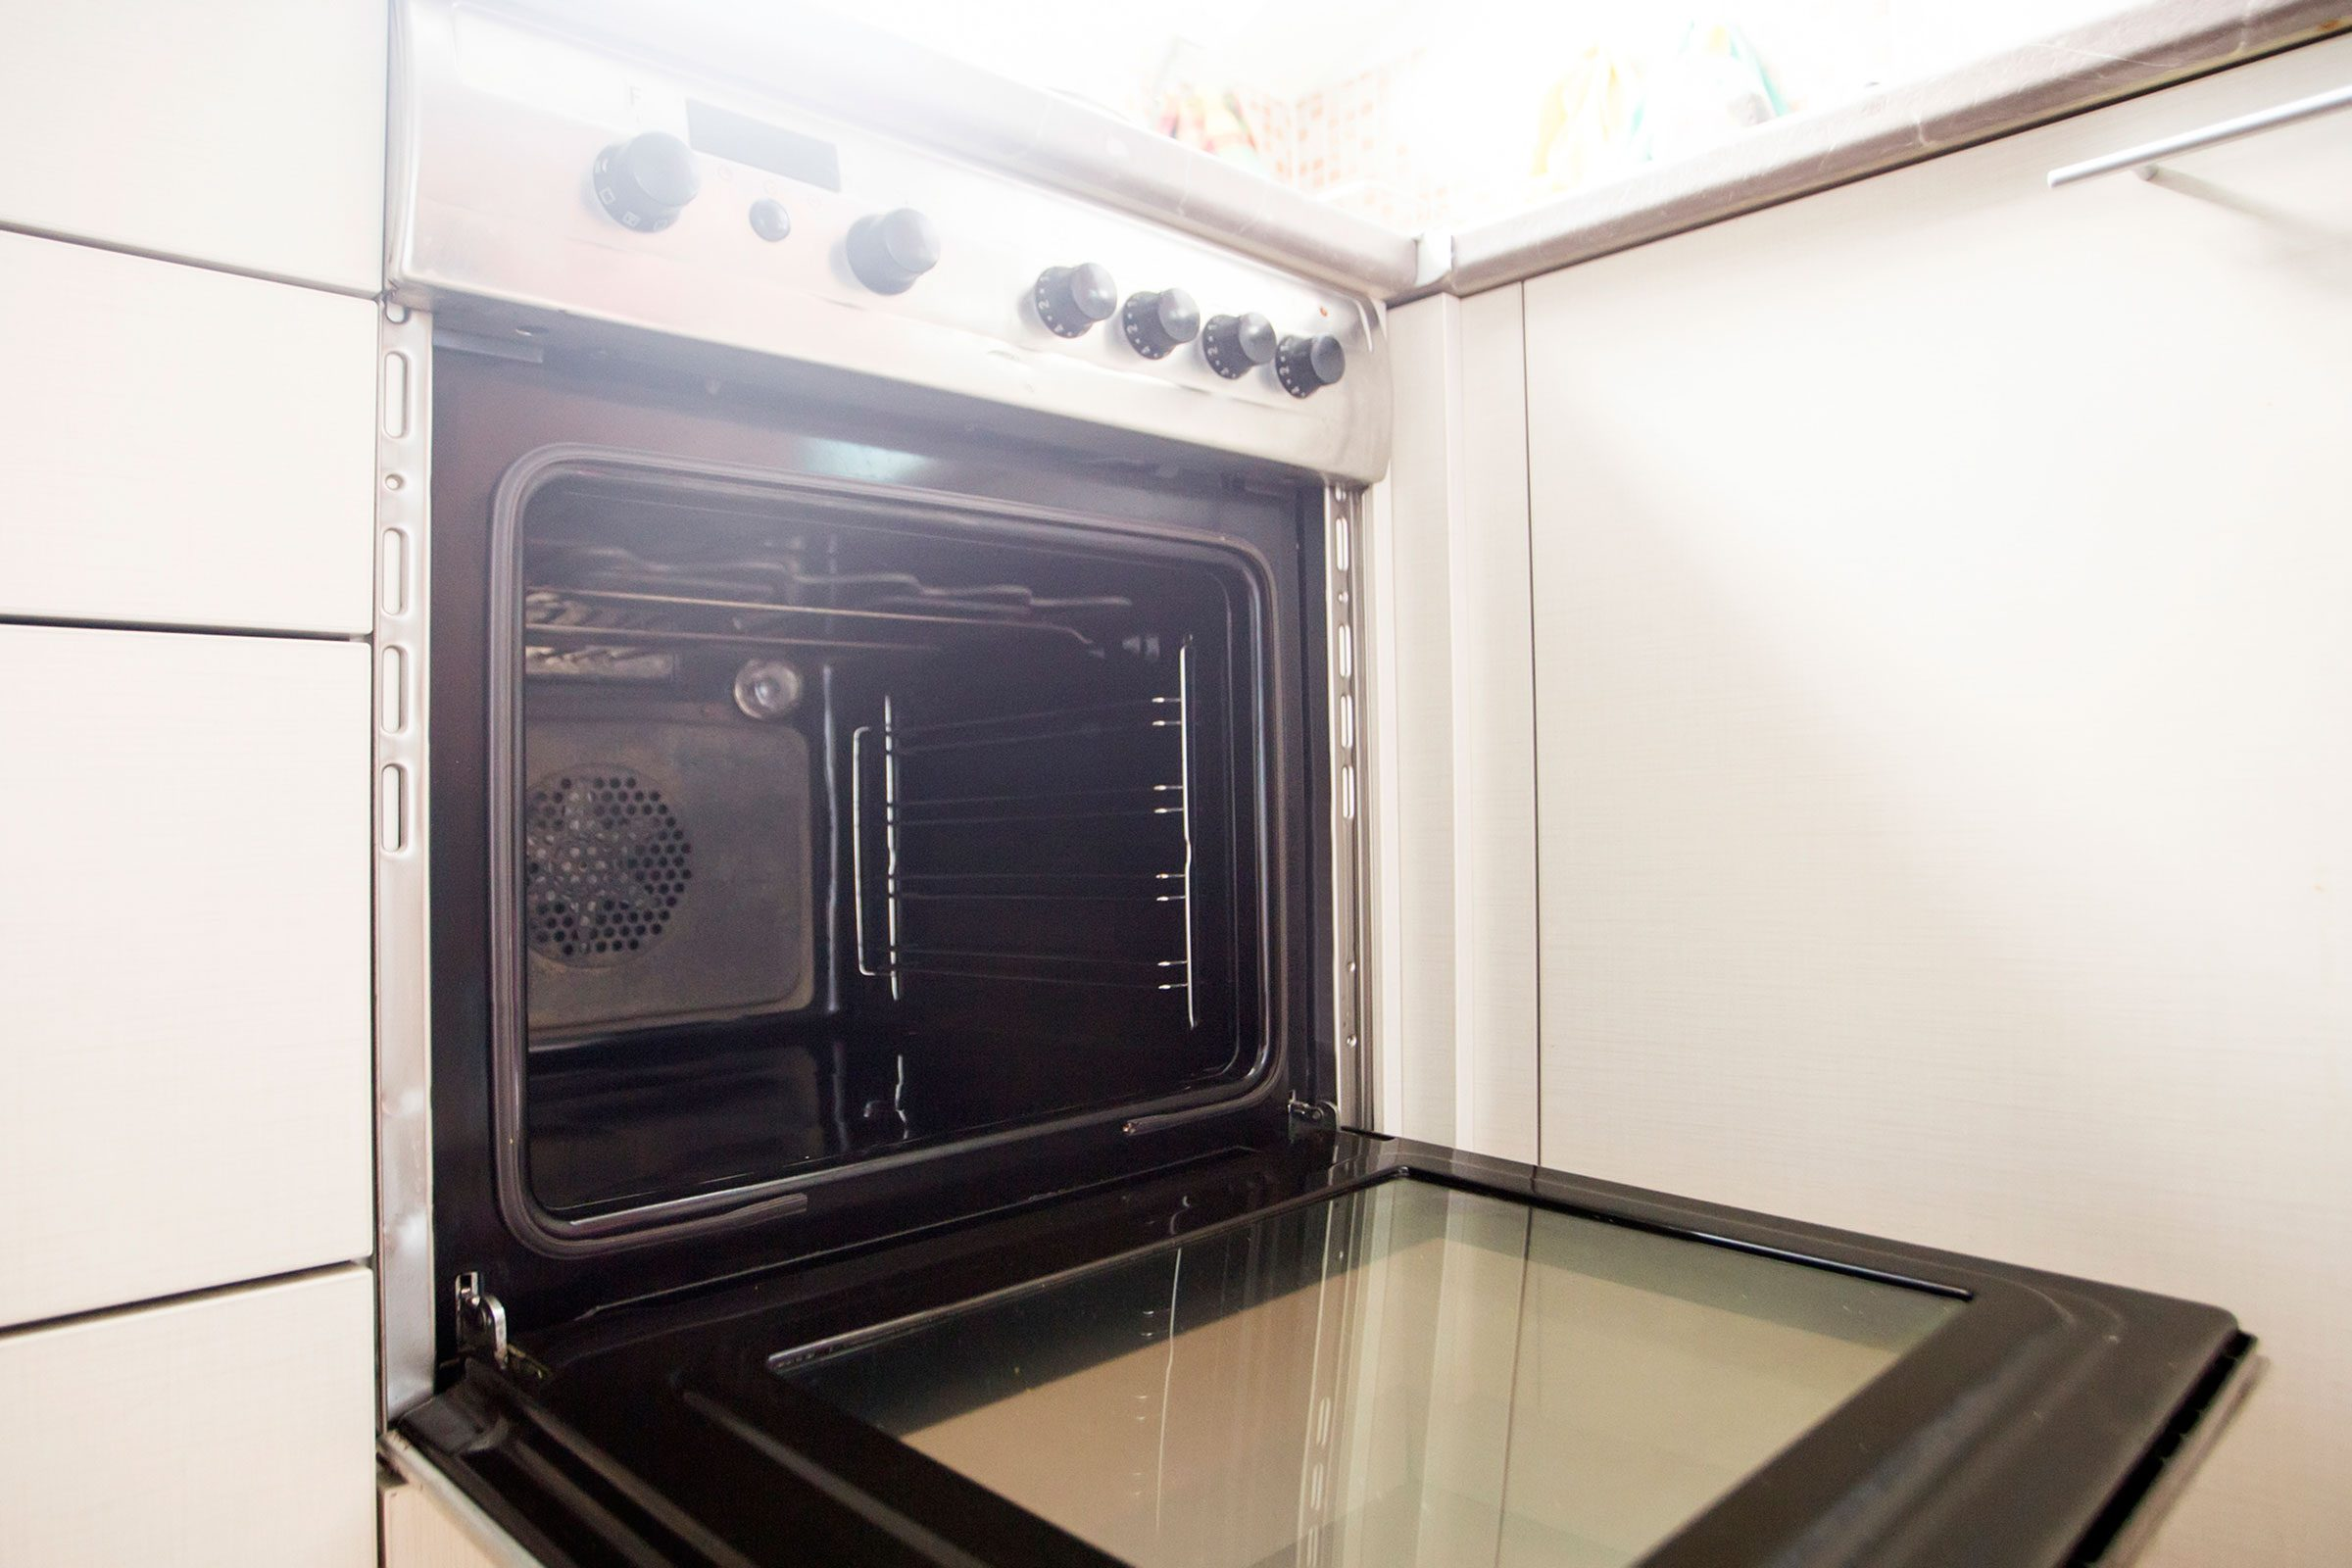 Self Cleaning Ovens What To Know Before Using Yours Readers Digest